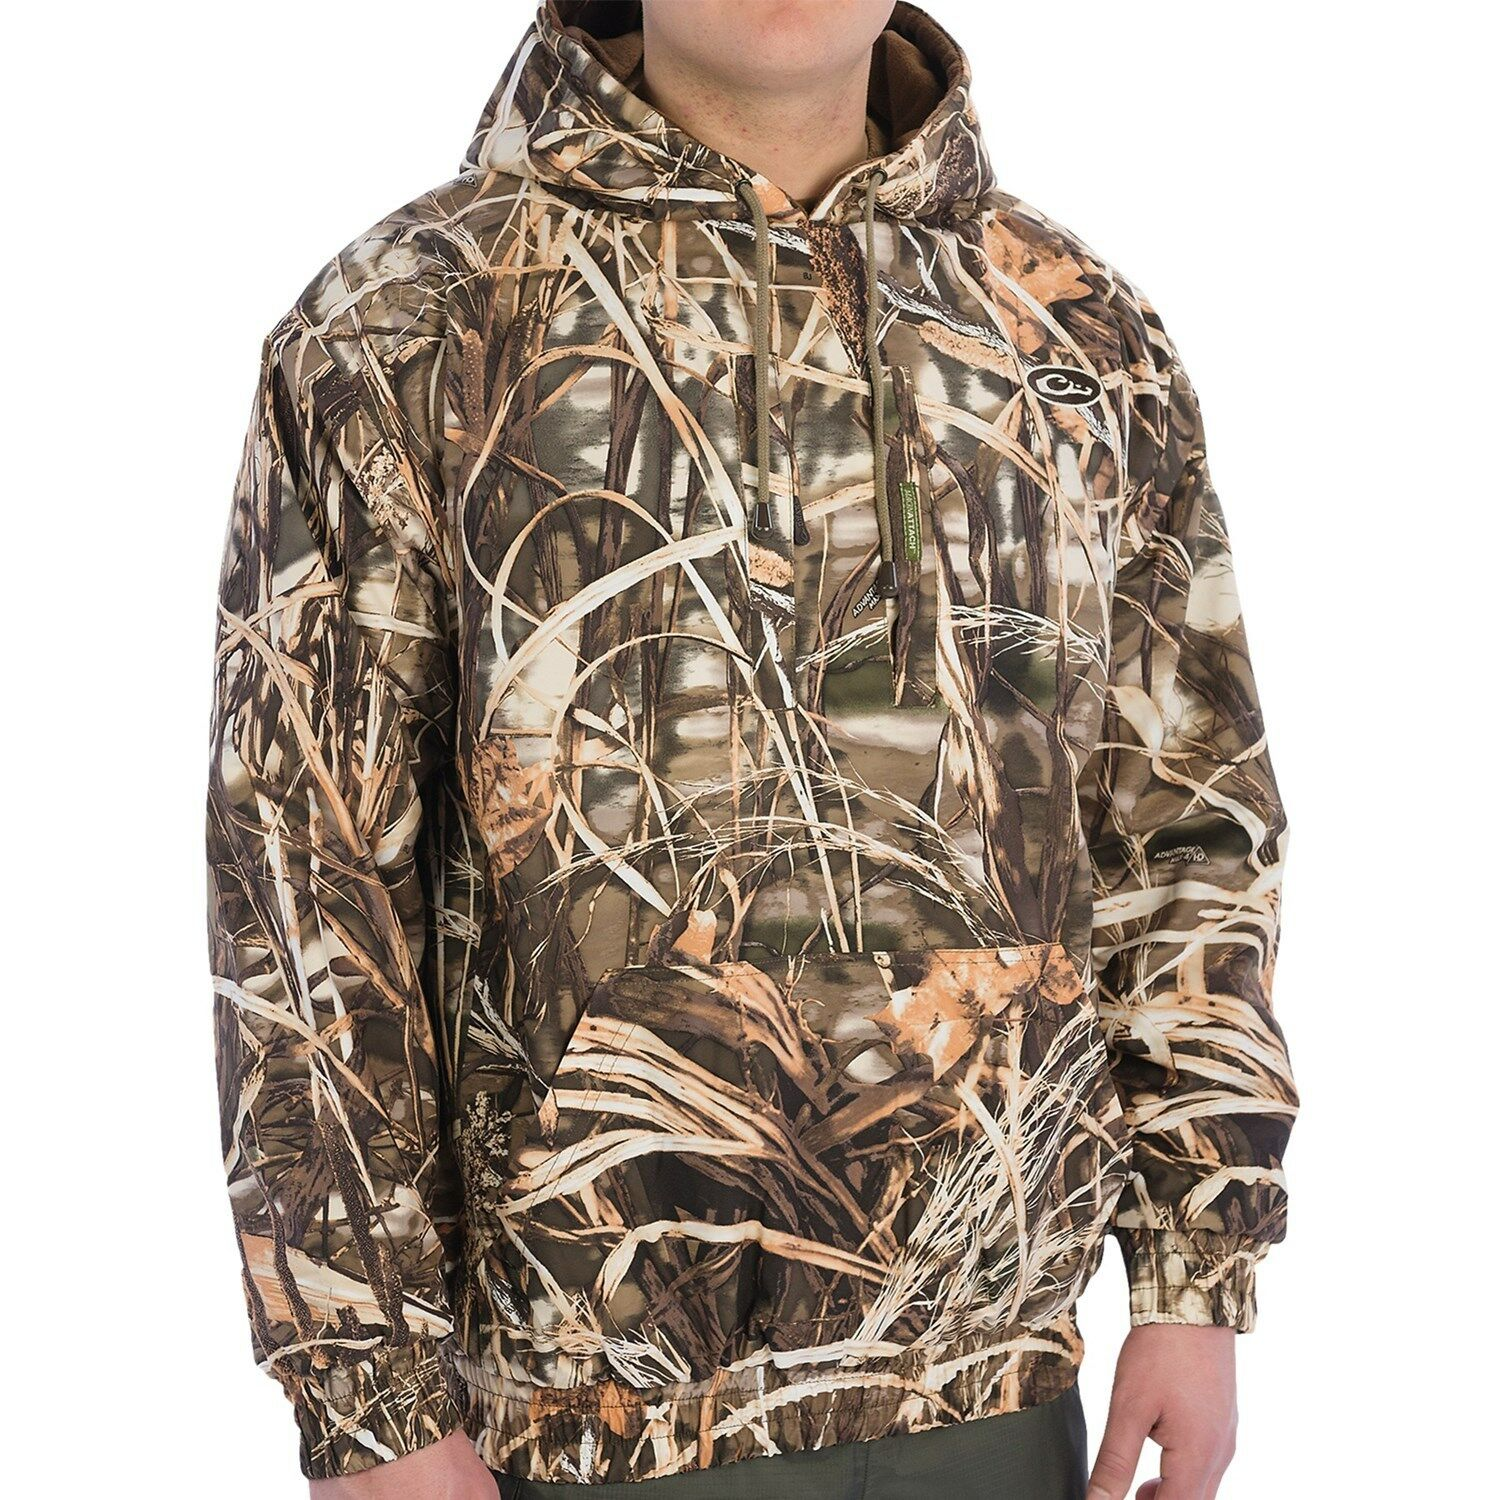 Drake  MST Pul r Hunting Hoodie Realtree Max 4 Camo Hooded Sweatshirt Size Med  cheapest price